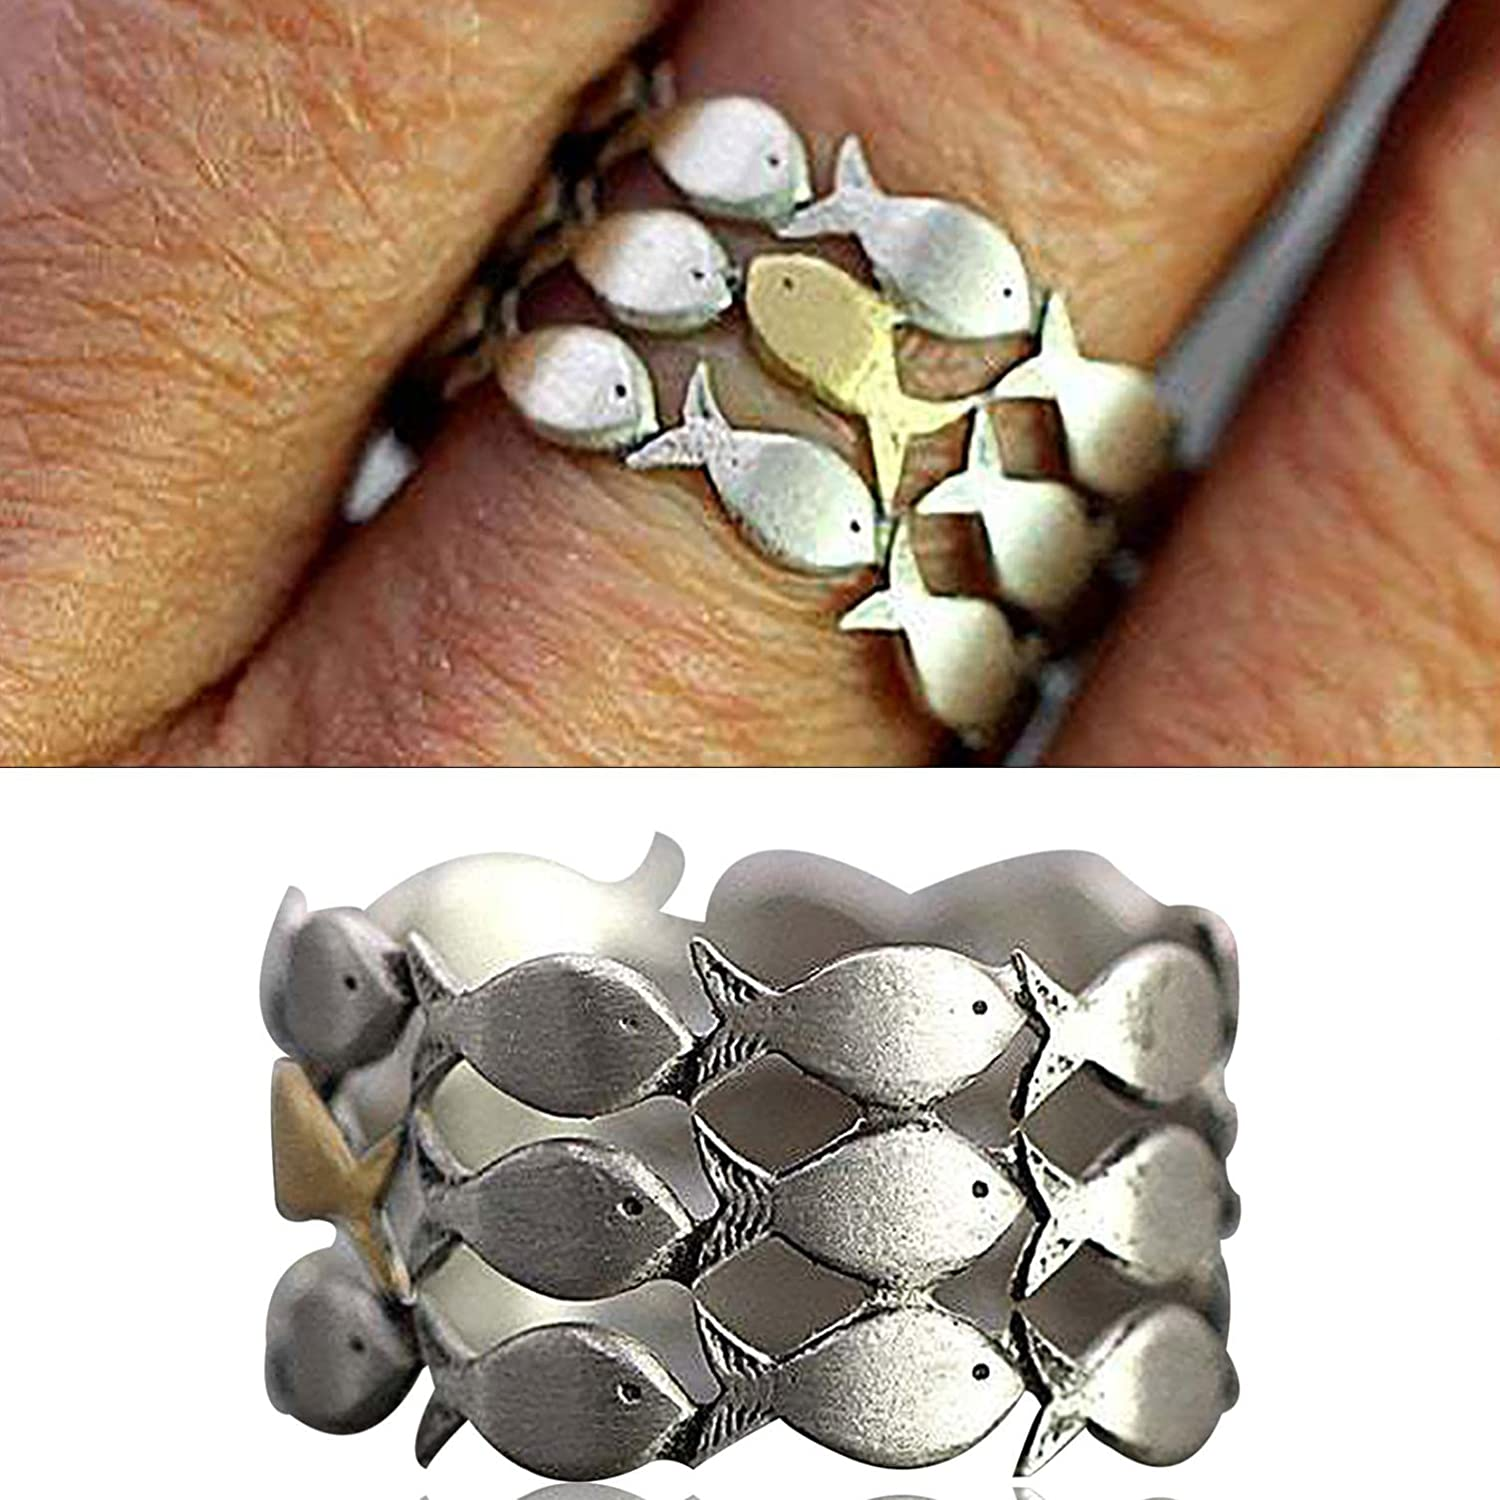 Women's Eternity Rings - New Creative Goldfish Swim Upstream On The Ring to Highlight Your Personality, Inspirational Wedding Bands Promise Rings Mother's Day Jewelry Gifts